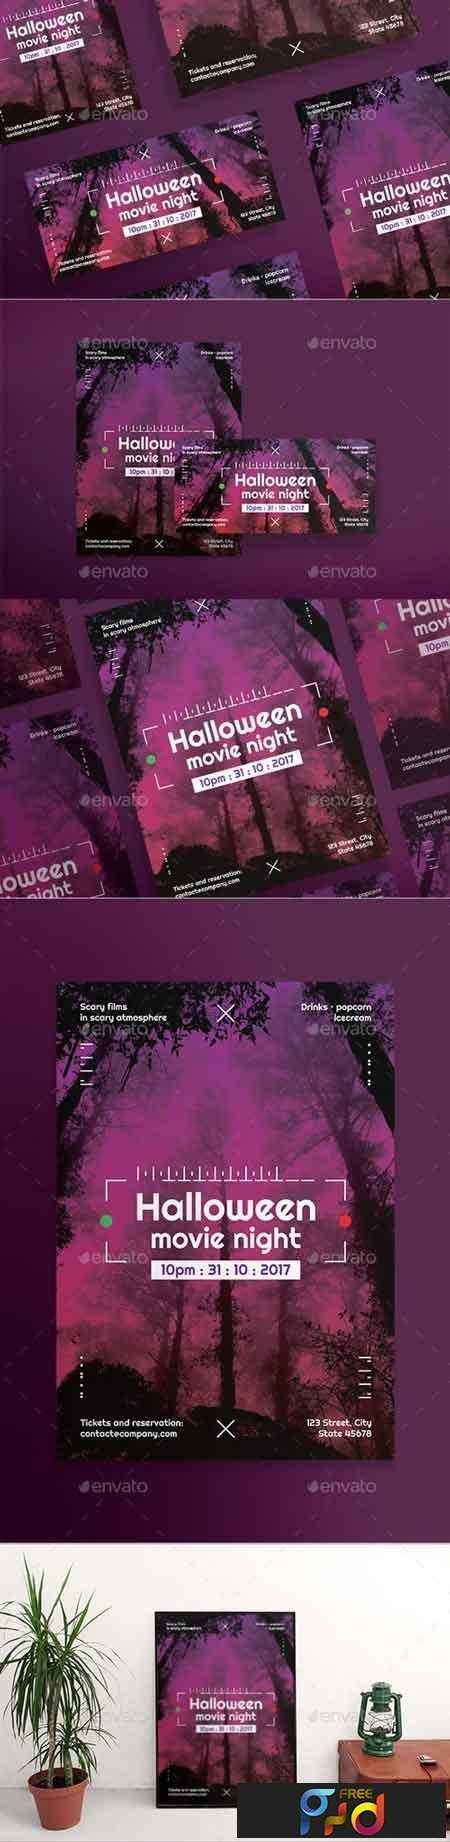 1812356 Halloween Movie Flyers 20786475 1